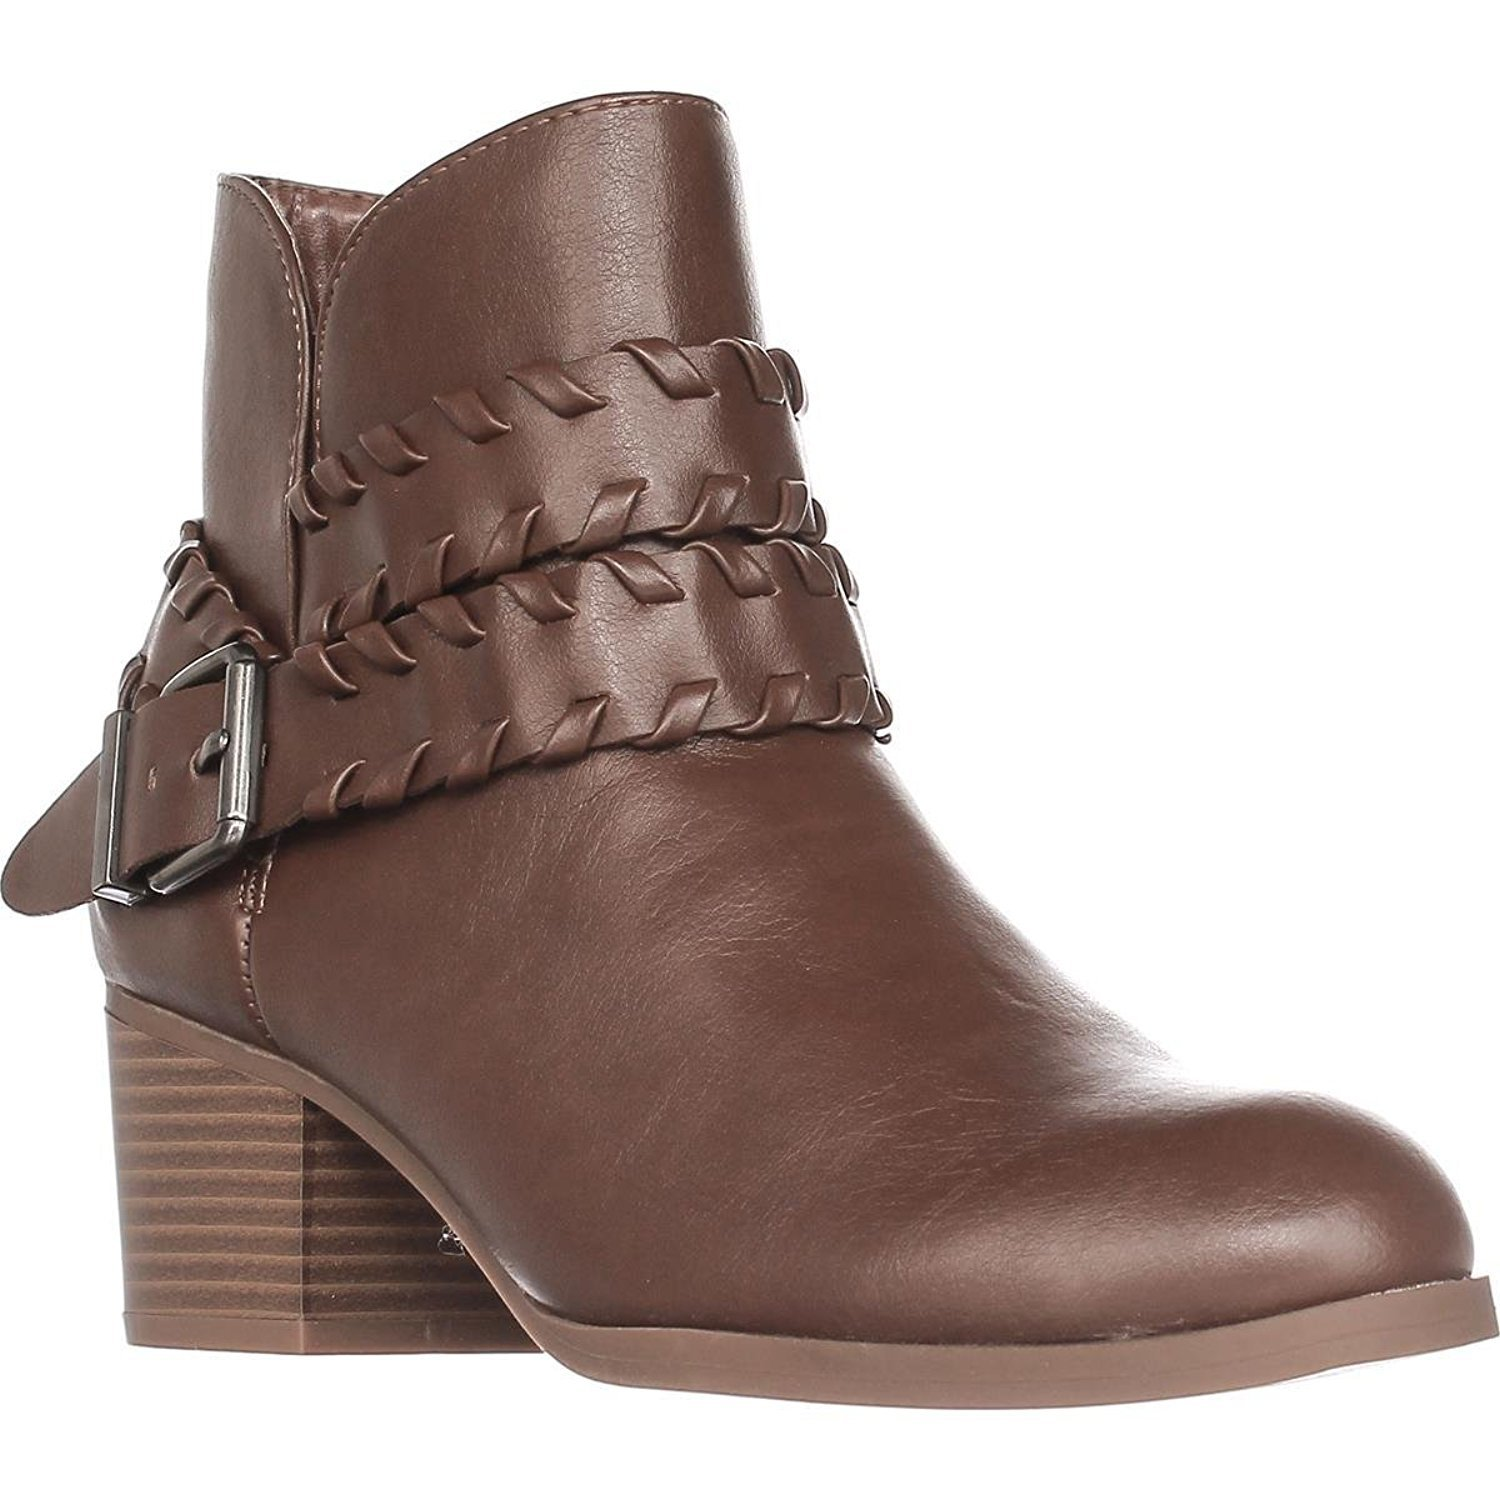 Style & Co. Womens Dyanaa Closed Toe Ankle Fashion Boots, Barrel, Size 7.0 by Style & Co. (Image #6)